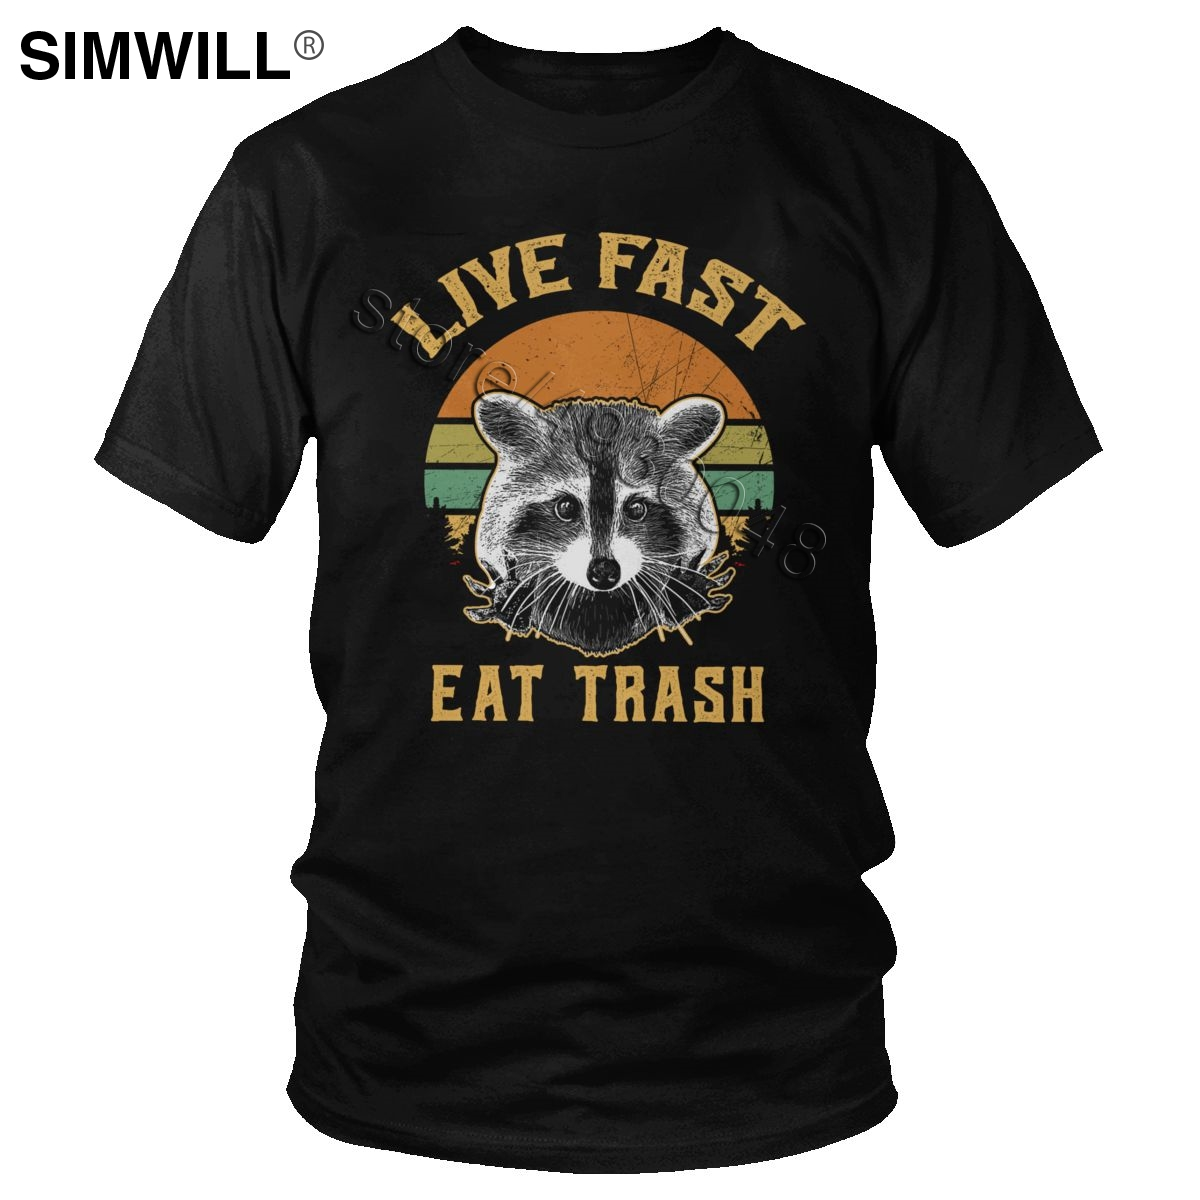 Retro Live Fast Eat Trash Raccoon Tshirt Mens Pure Cotton Racoon Shirts Short Sleeve Round Collar Panda T-shirt Summer Tees Gift